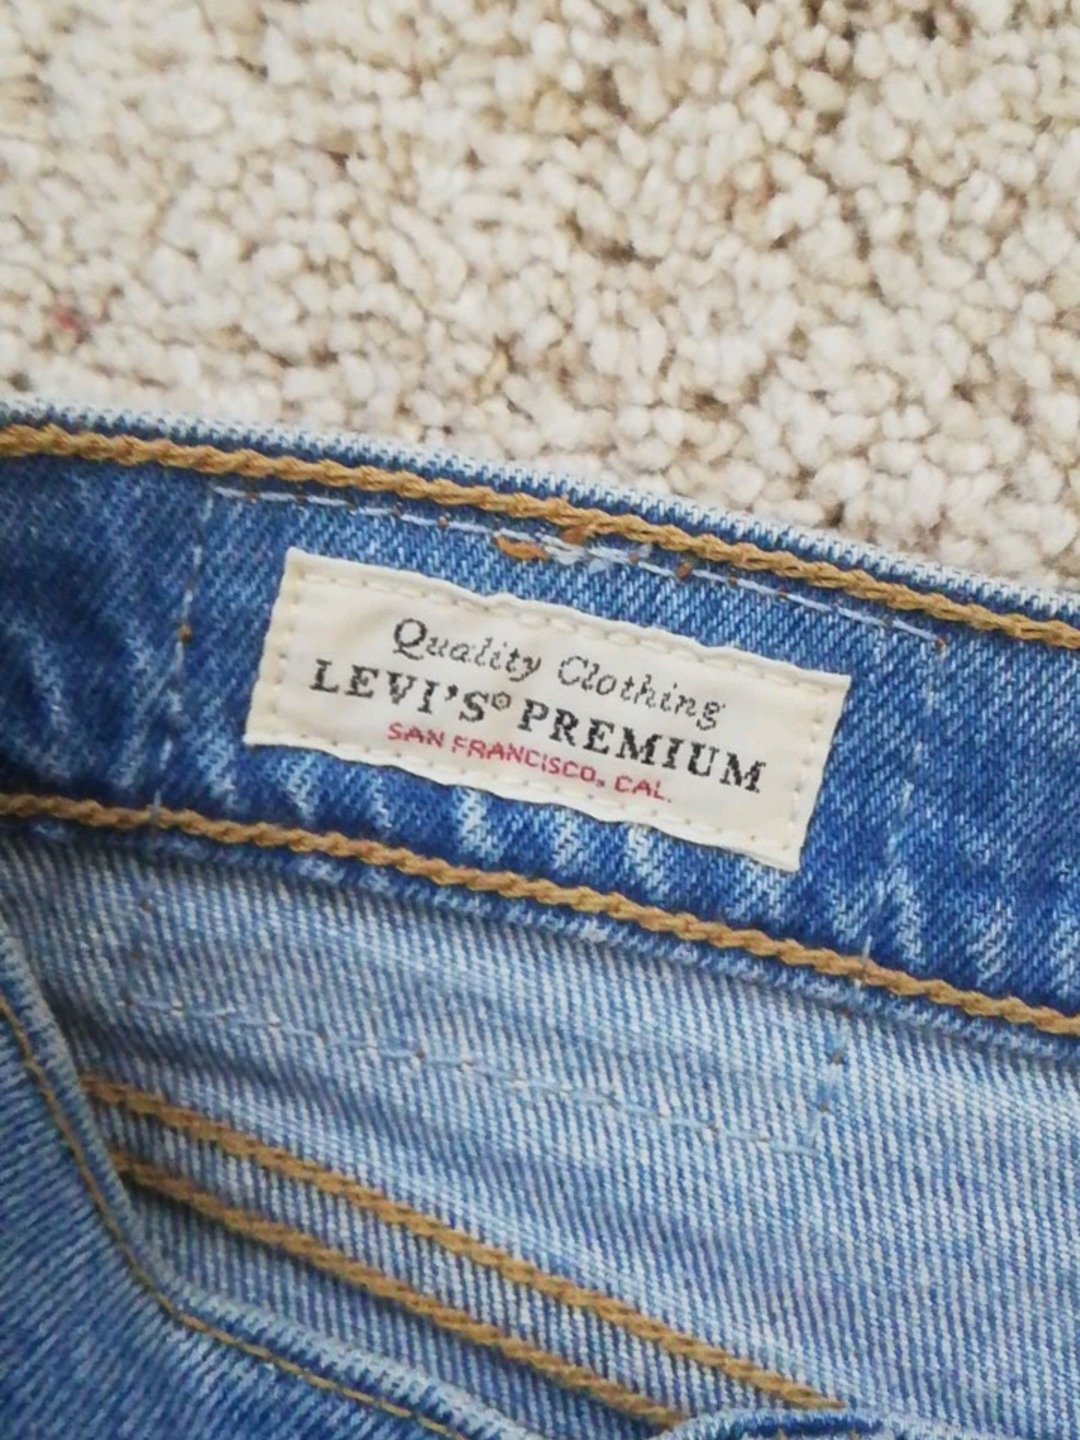 Damen shorts - LEVI'S photo 4